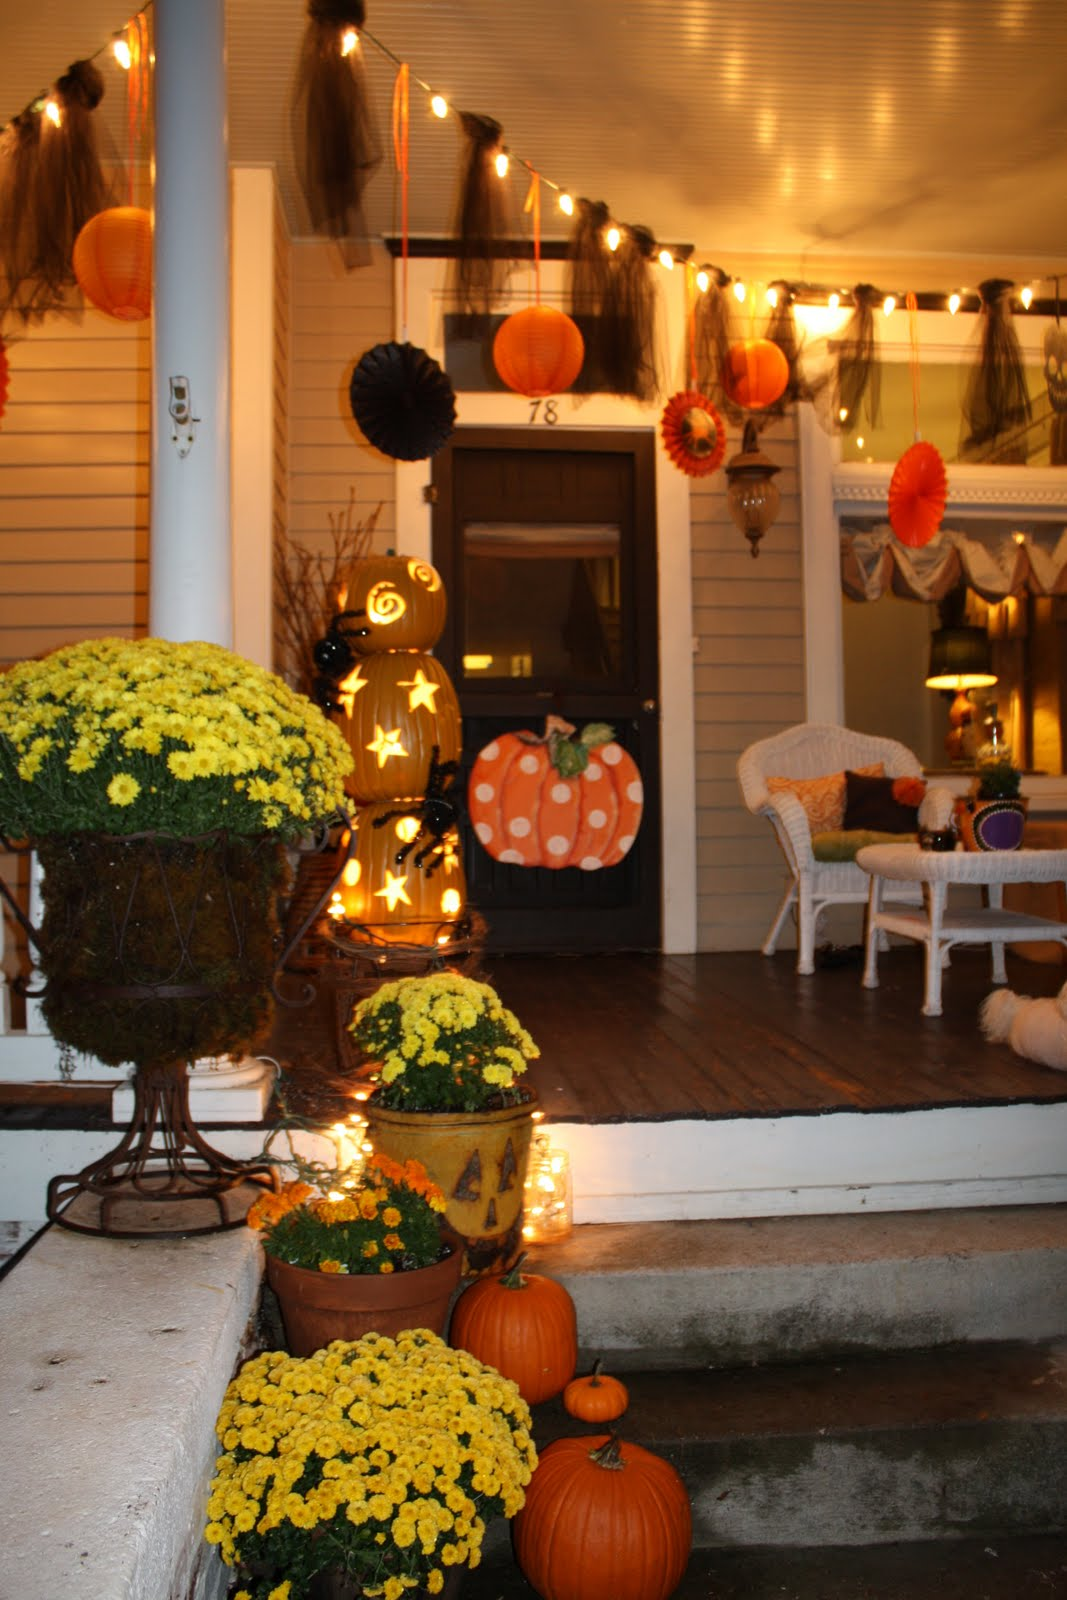 50 Chilling and Thrilling Halloween Porch Decorations for 2019